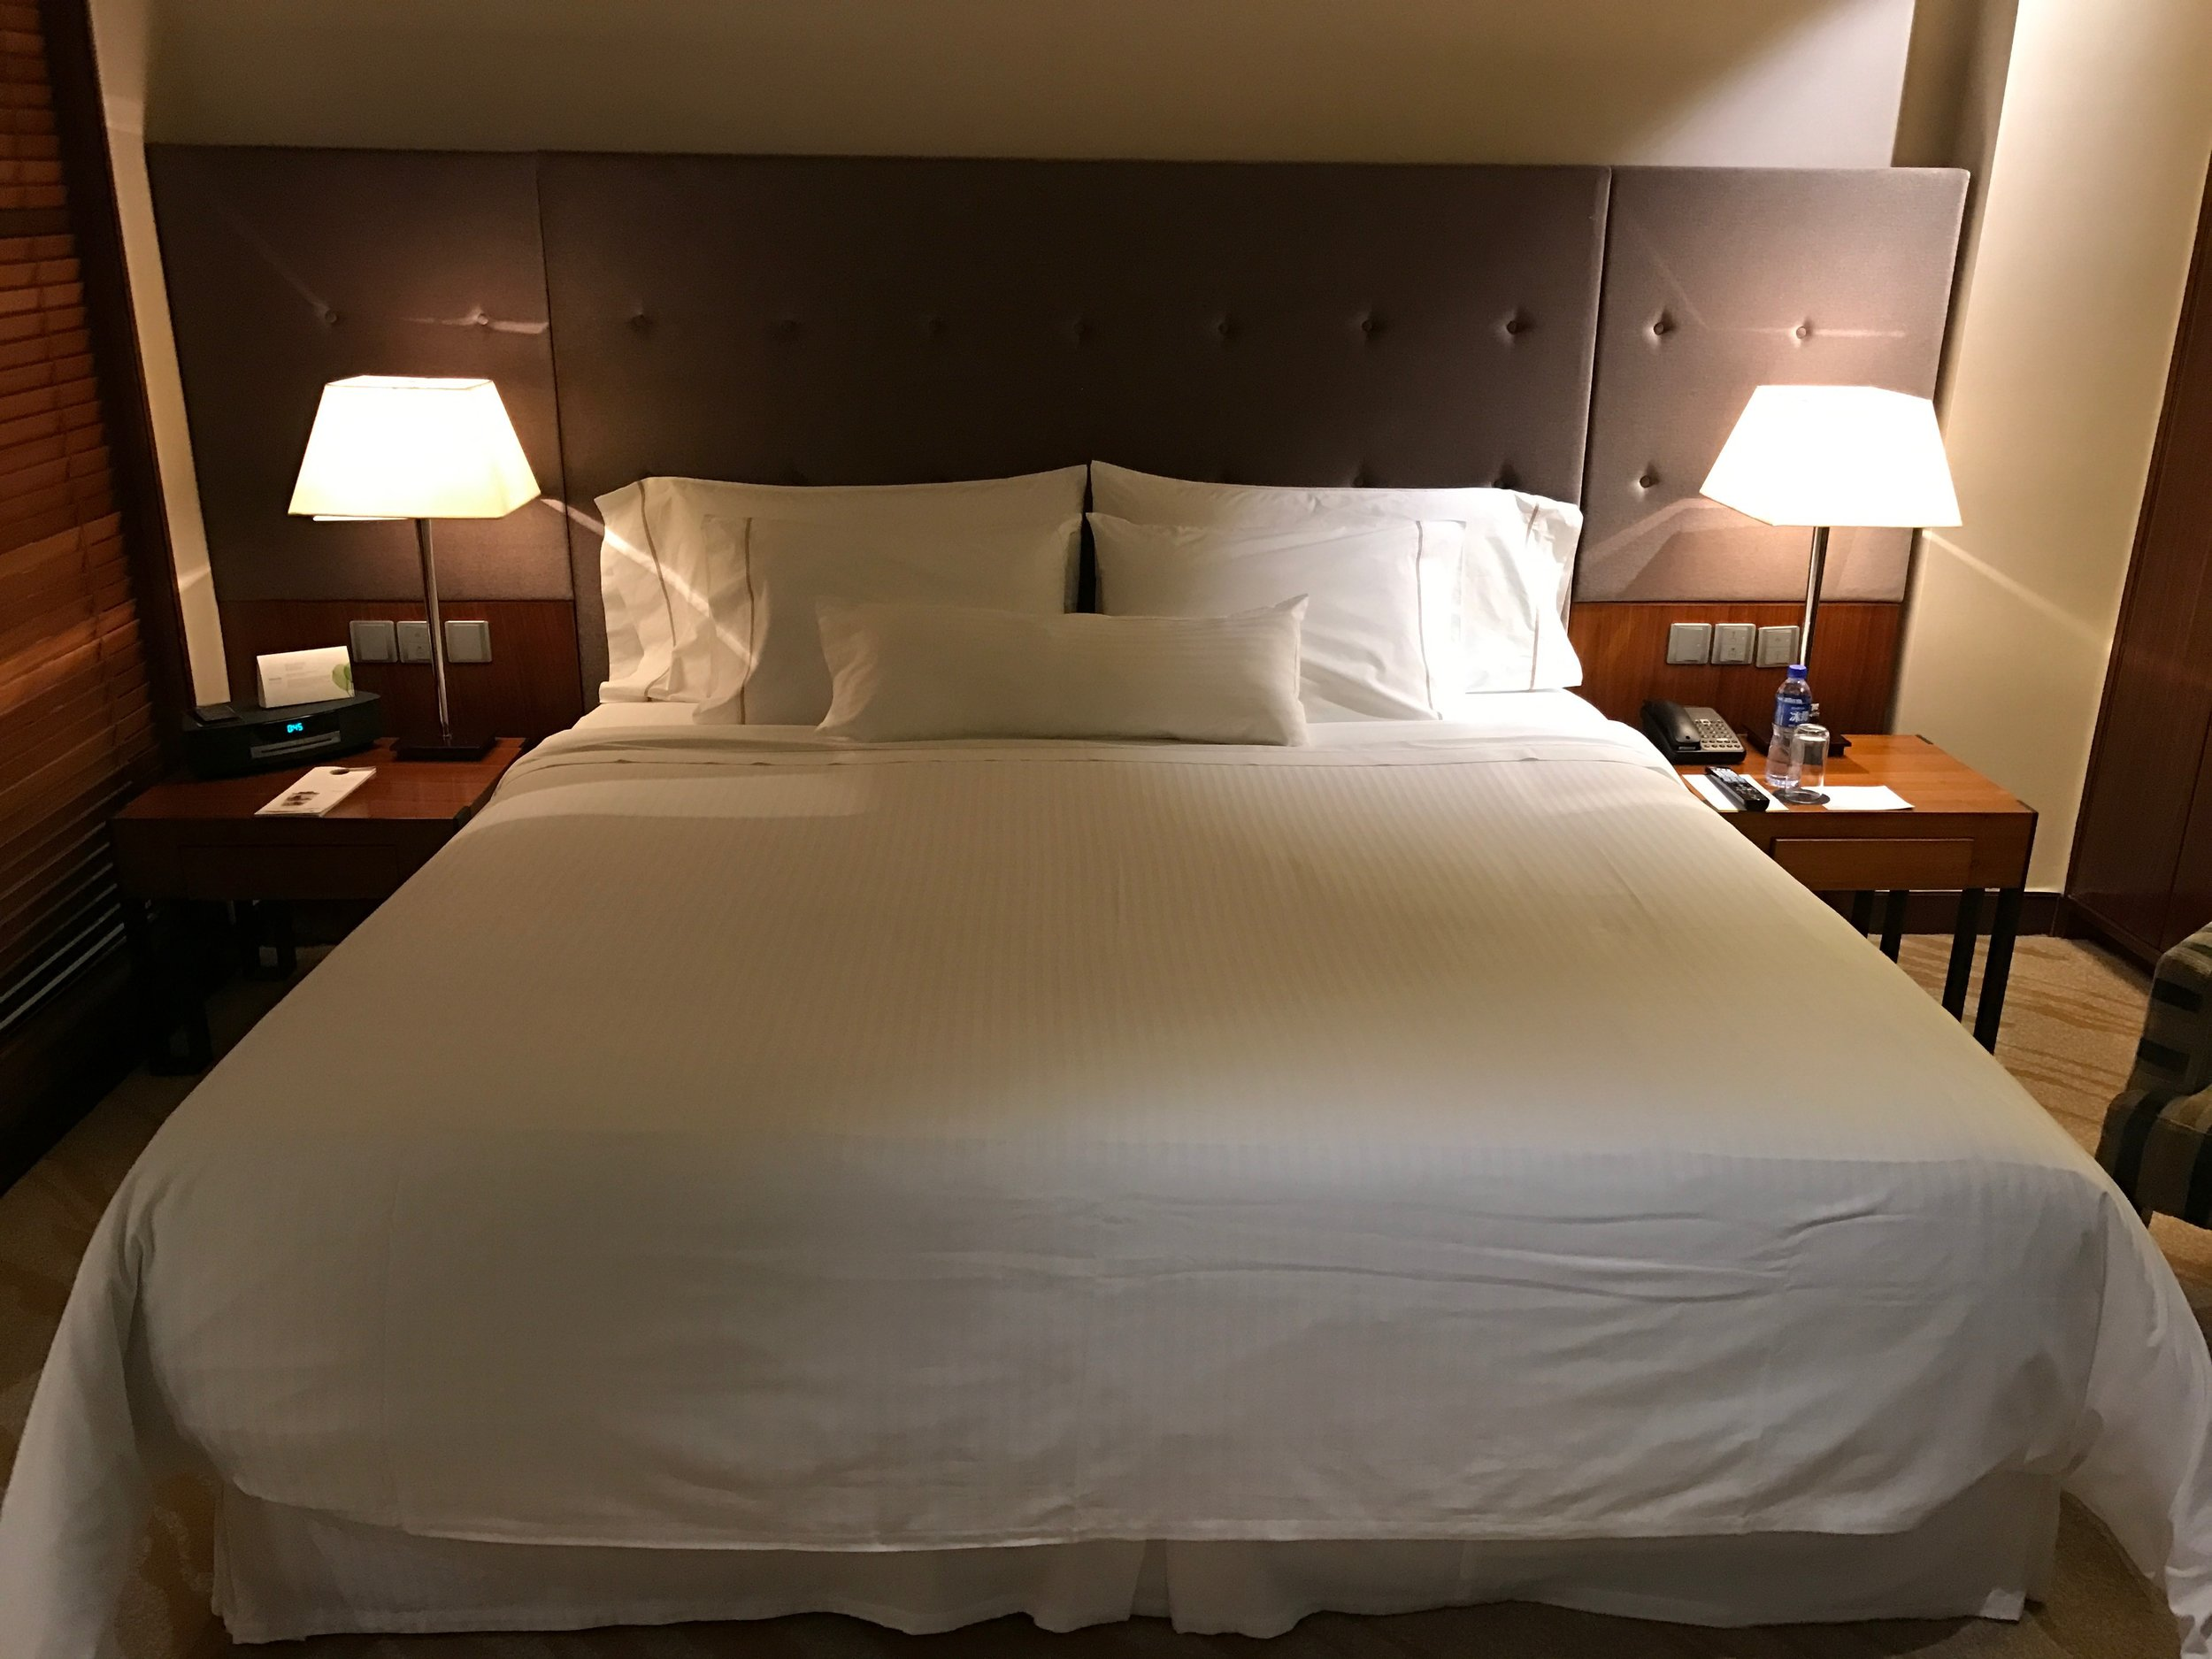 Executive Renewal Suite - King bed